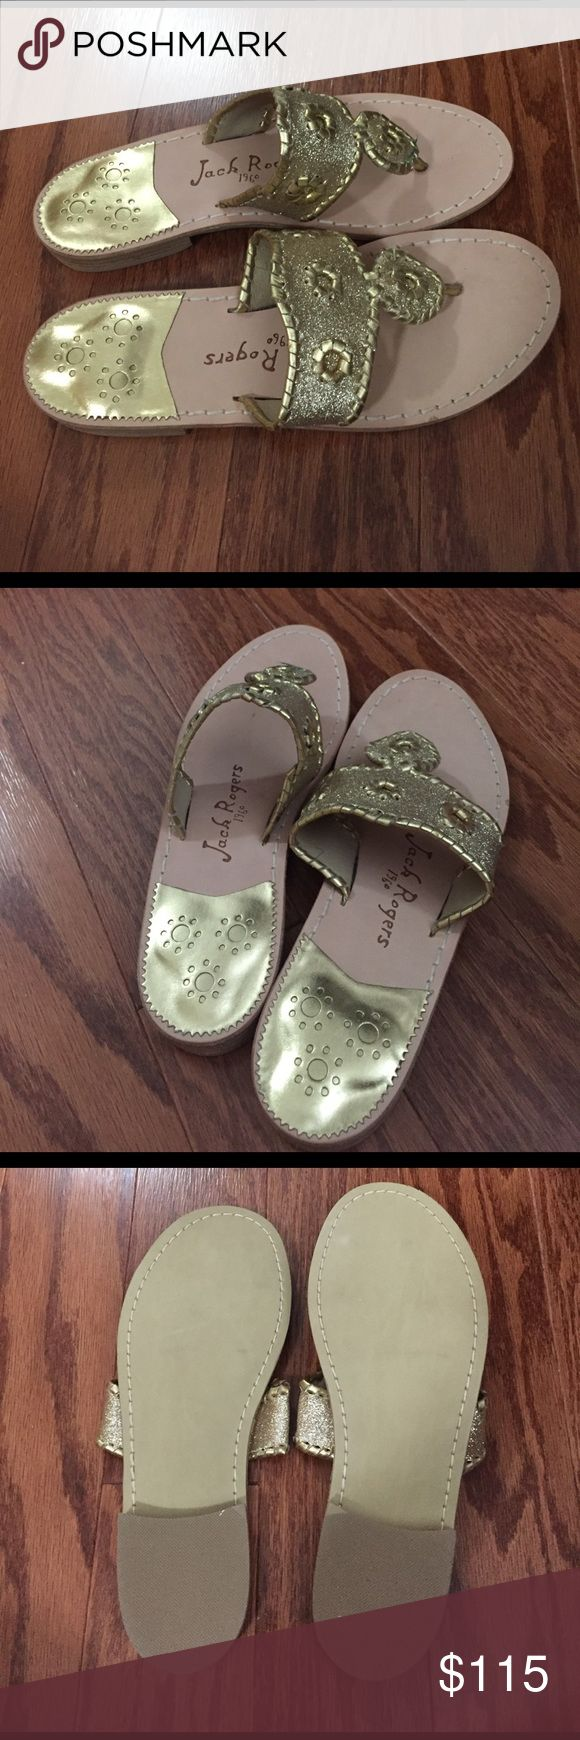 Gold sparkle Jack Rogers sandals Gold glitter Jack Rogers - size 7 - brand new - never worn - box included Jack Rogers Shoes Sandals